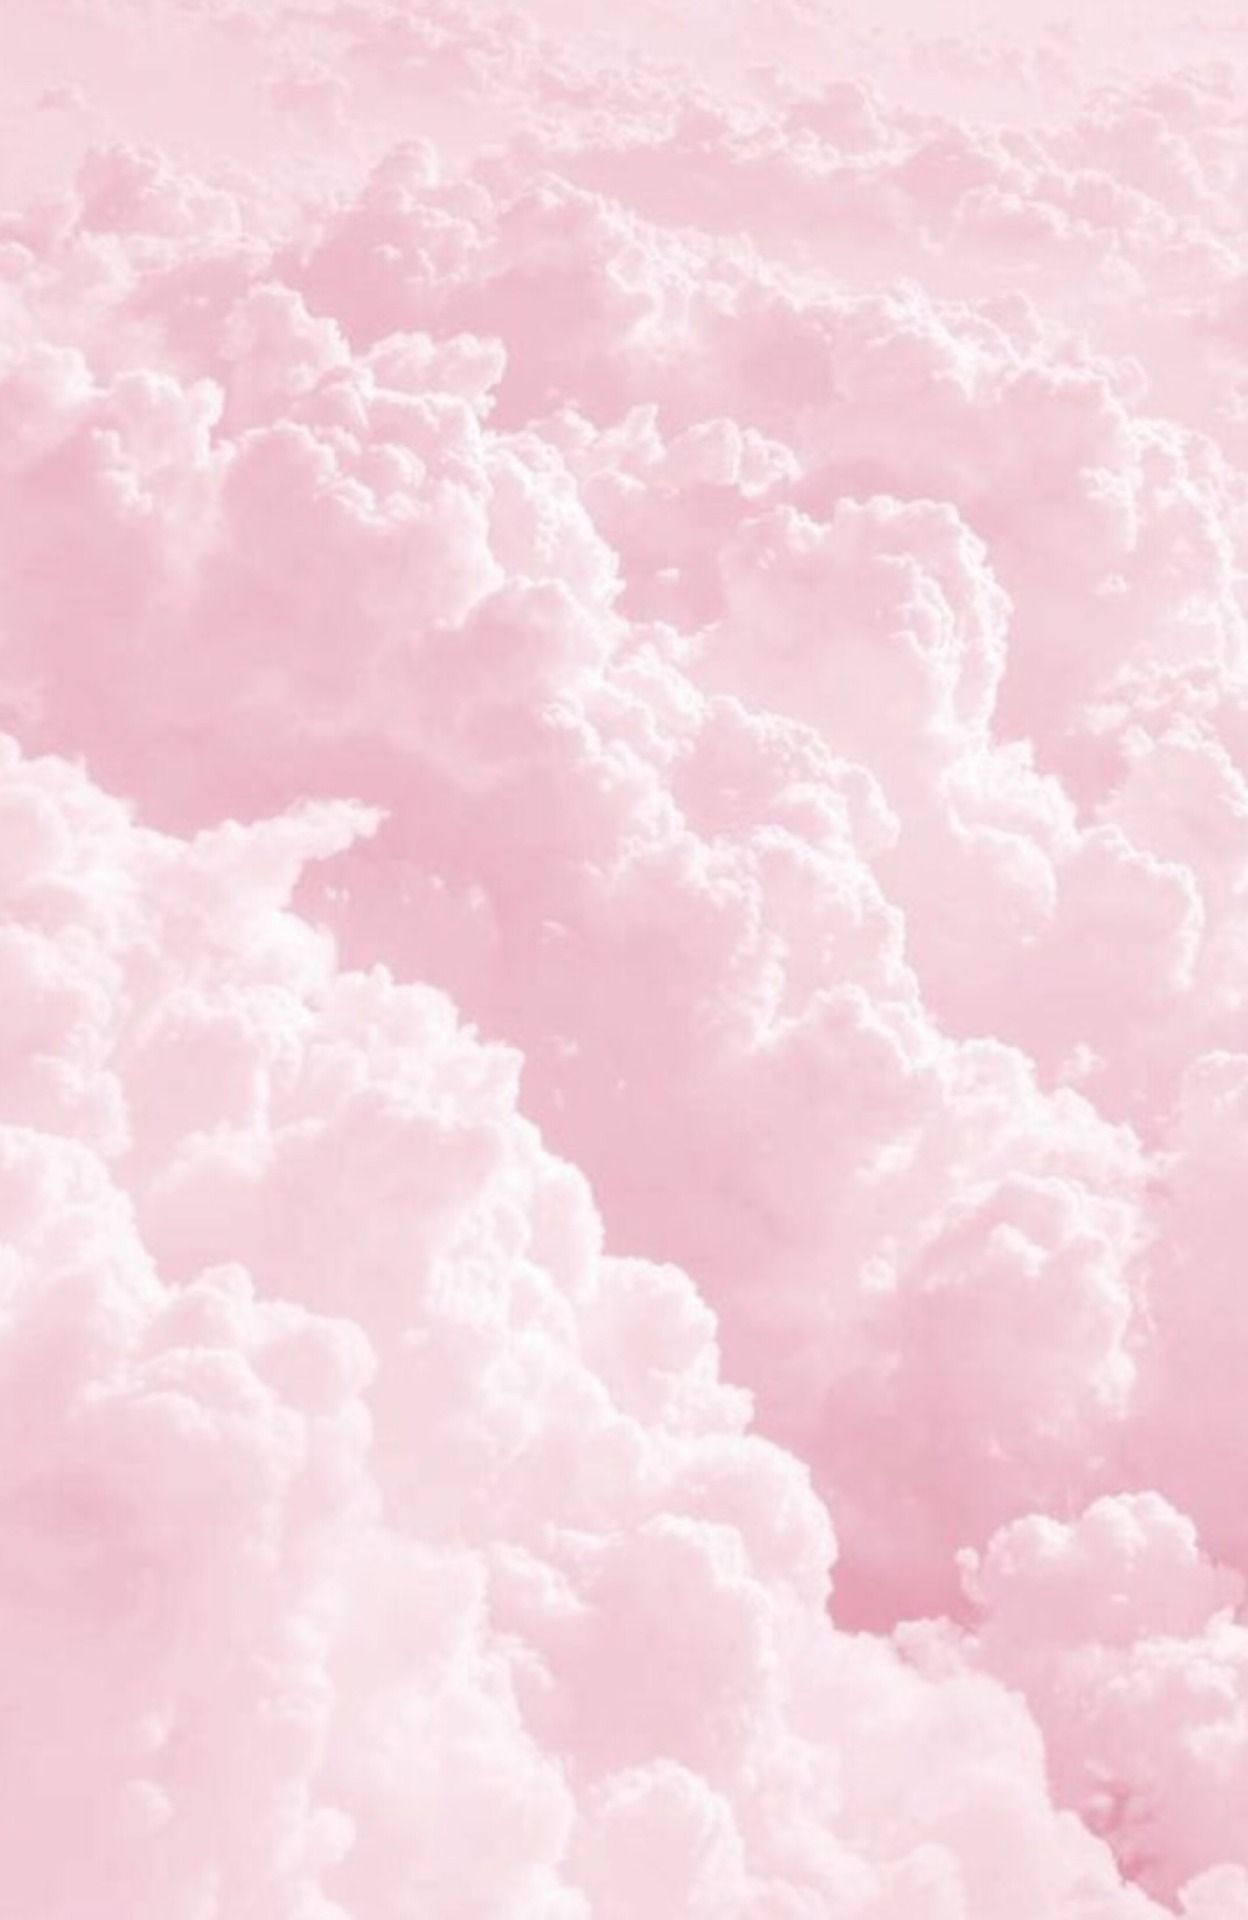 Aesthetic Pink Iphone Wallpapers Top Free Aesthetic Pink Iphone Backgrounds Wallpaperaccess